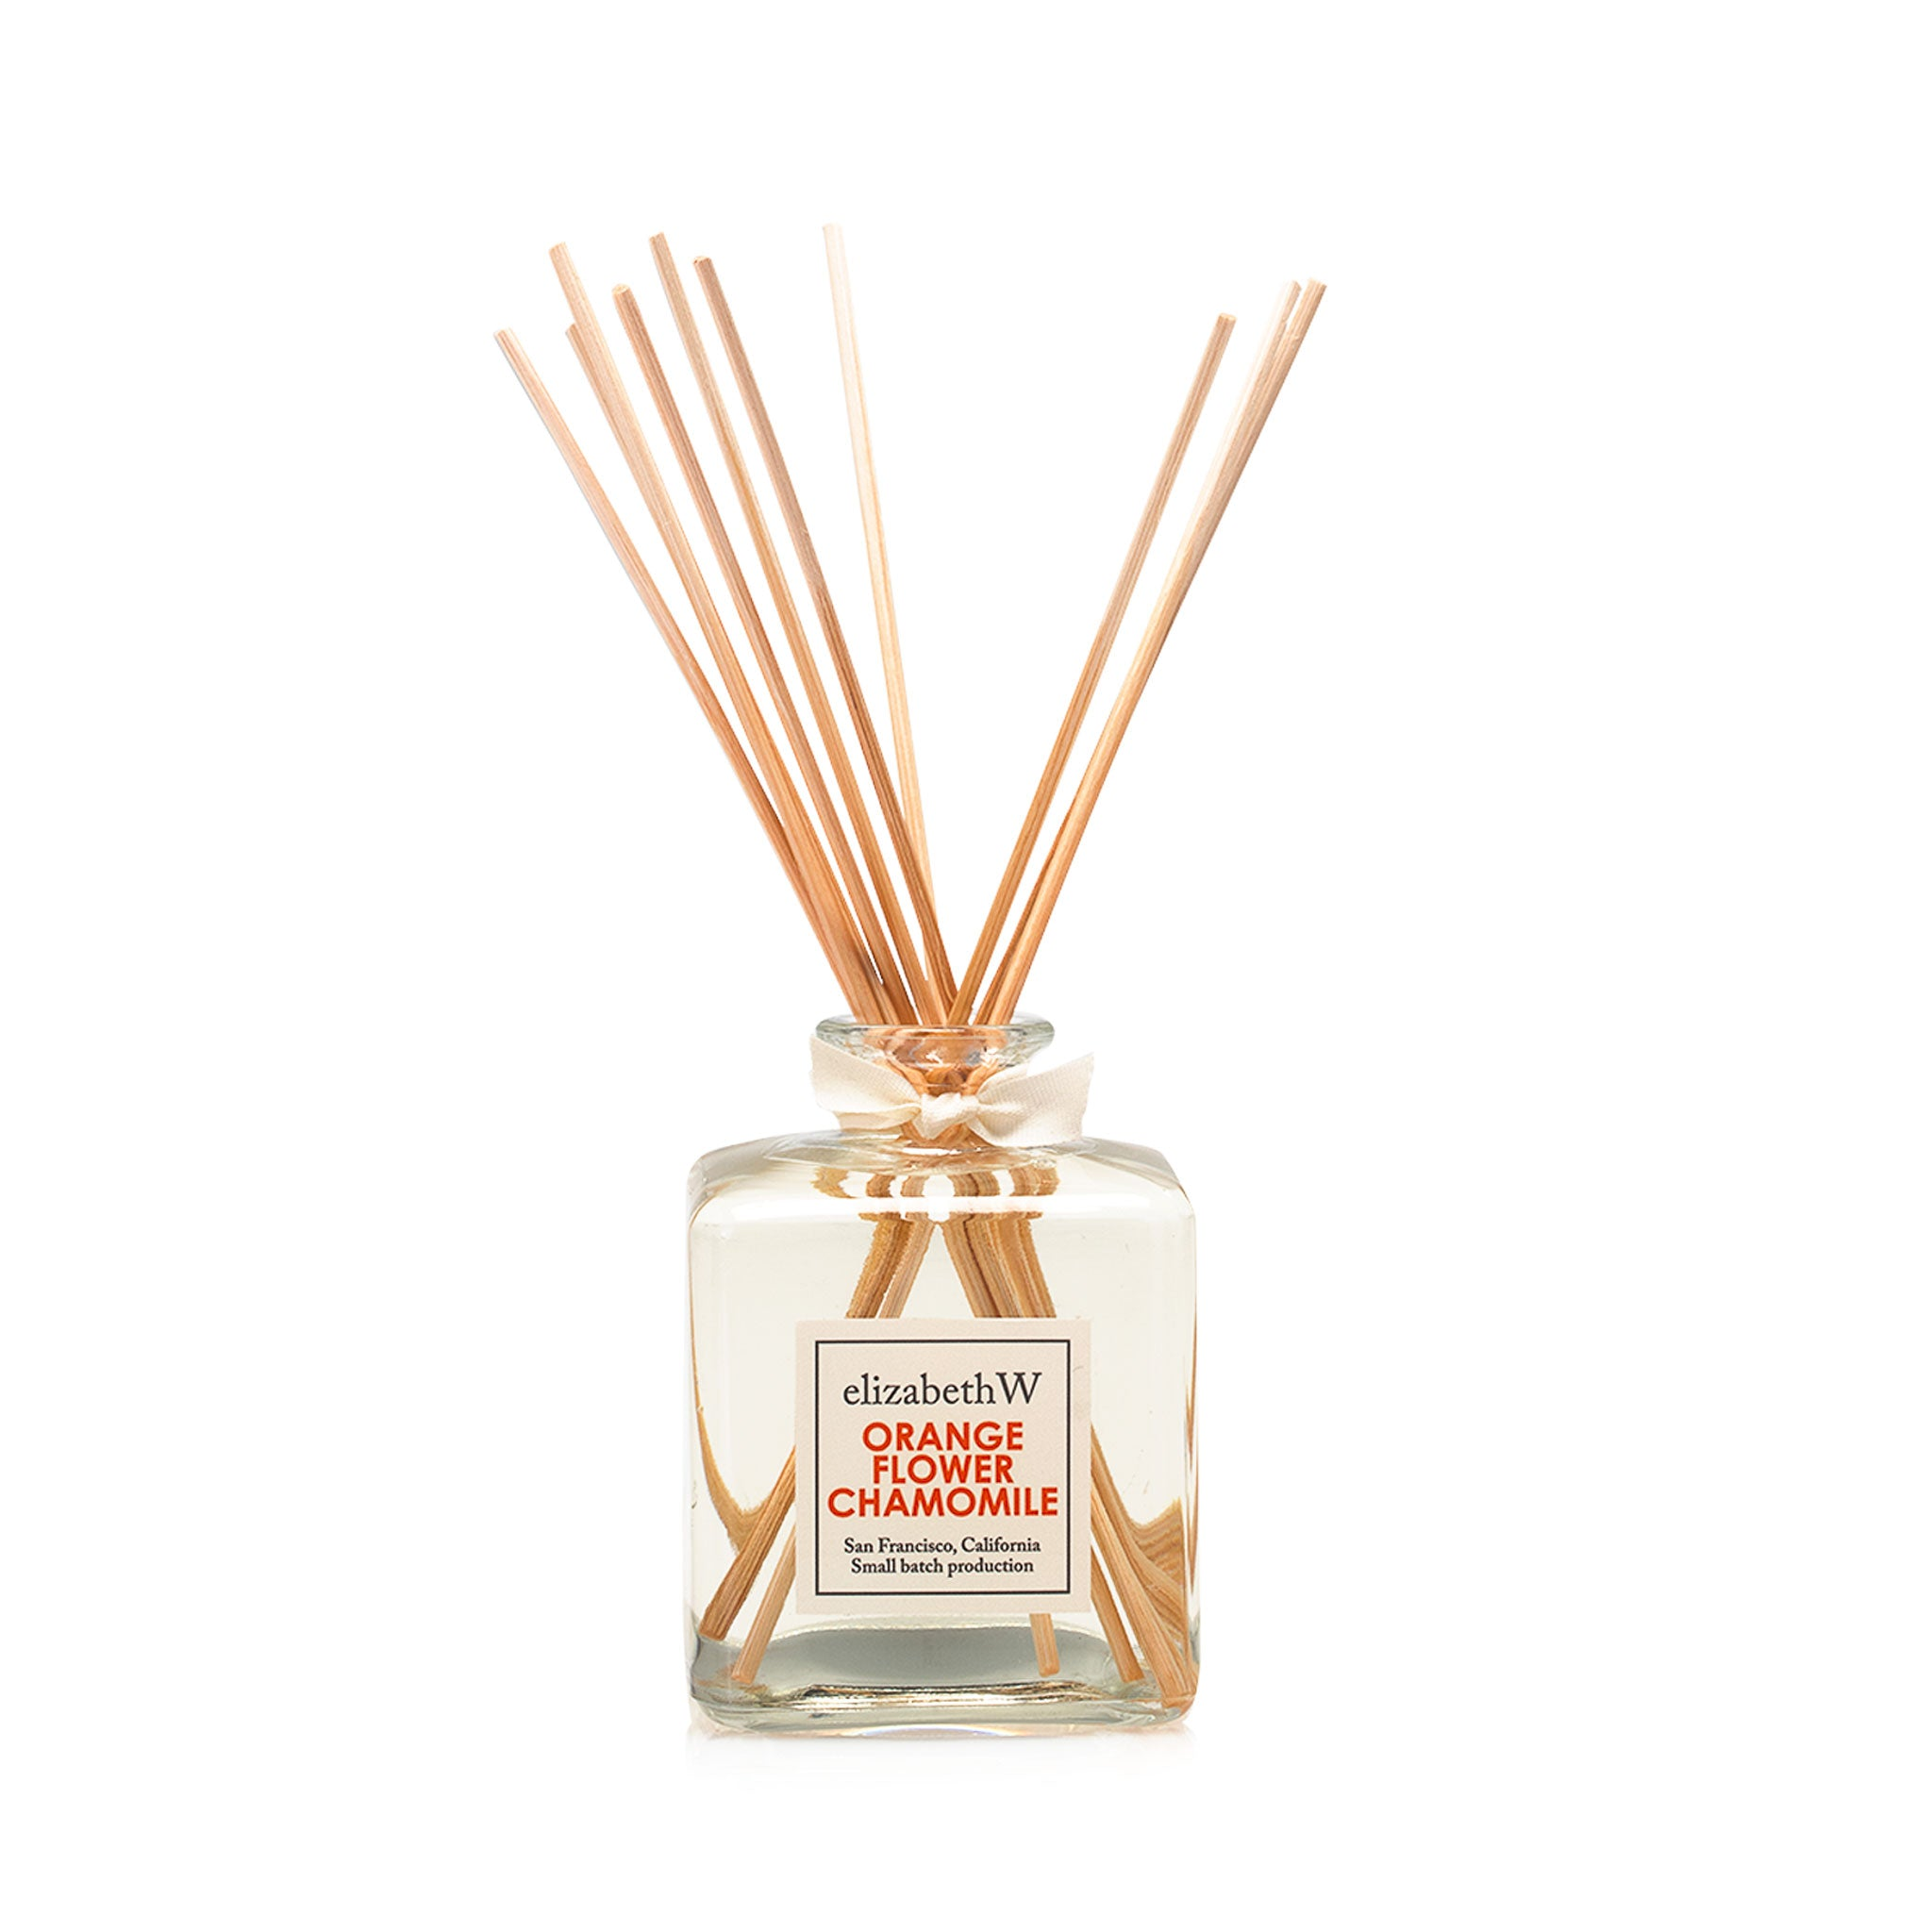 Orange Flower Chamomile Diffuser